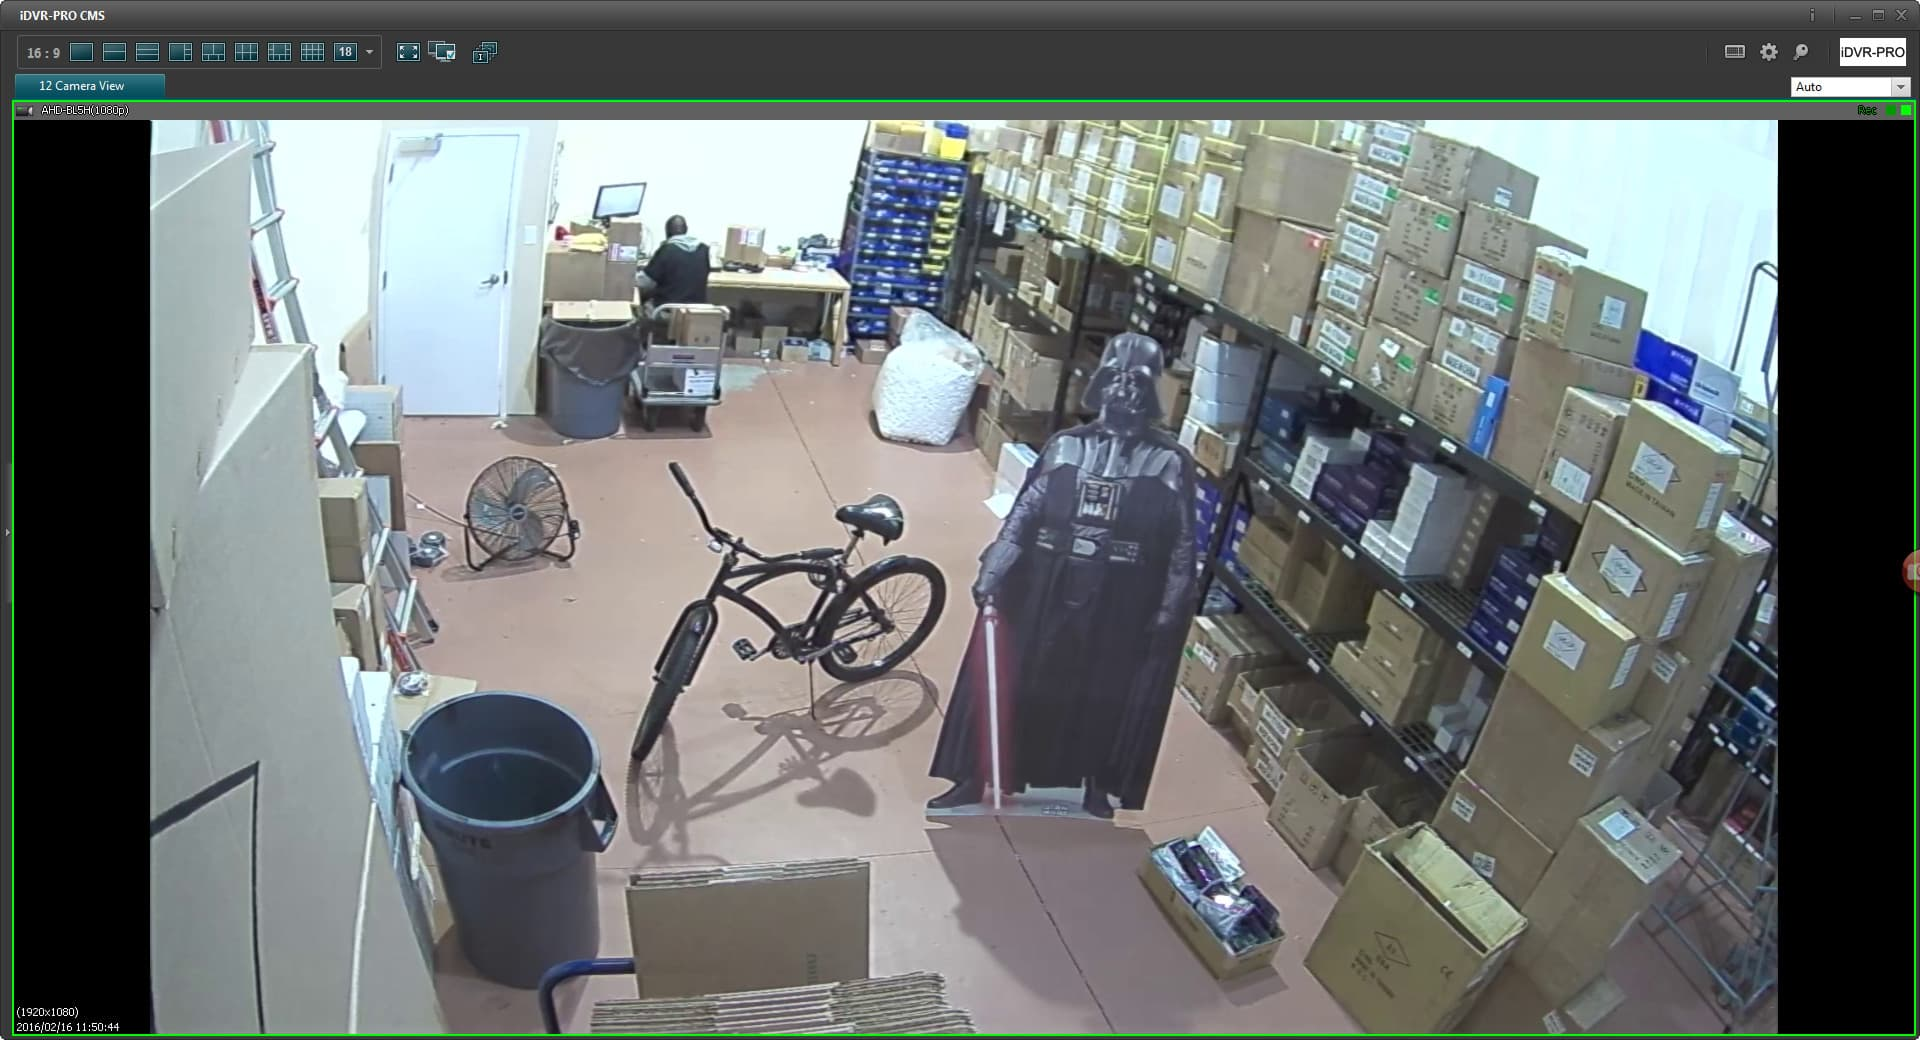 1080p HD Security Camera Live View